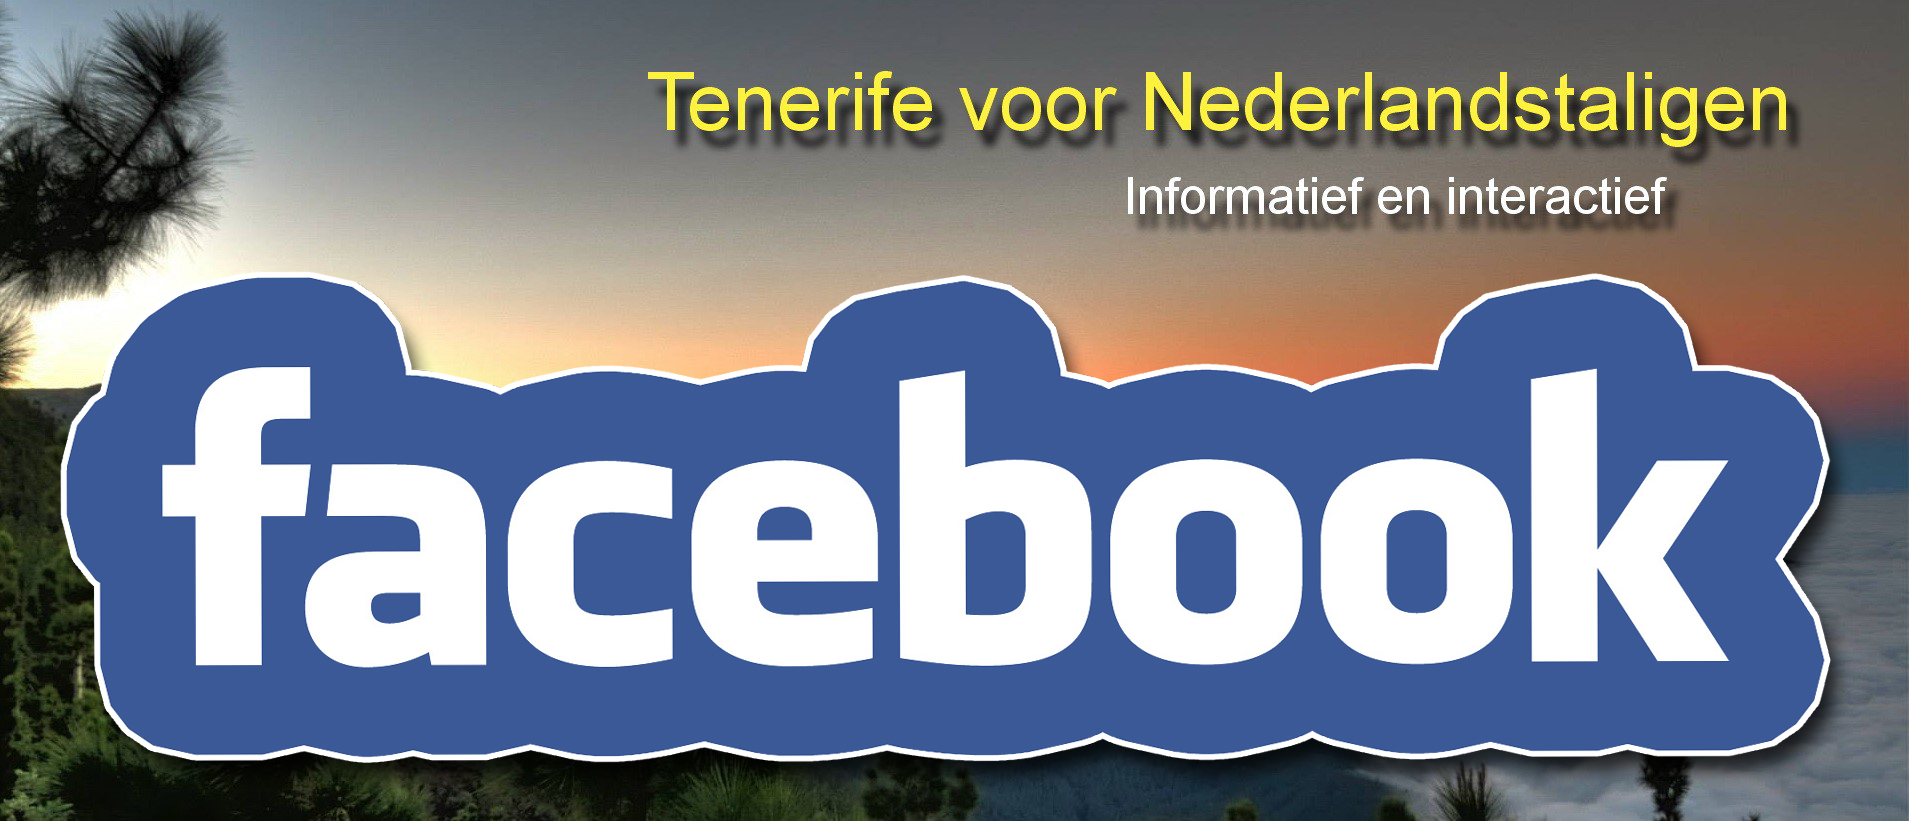 Tenerife-Connect facebook leden TNT virus groep sociaal medium